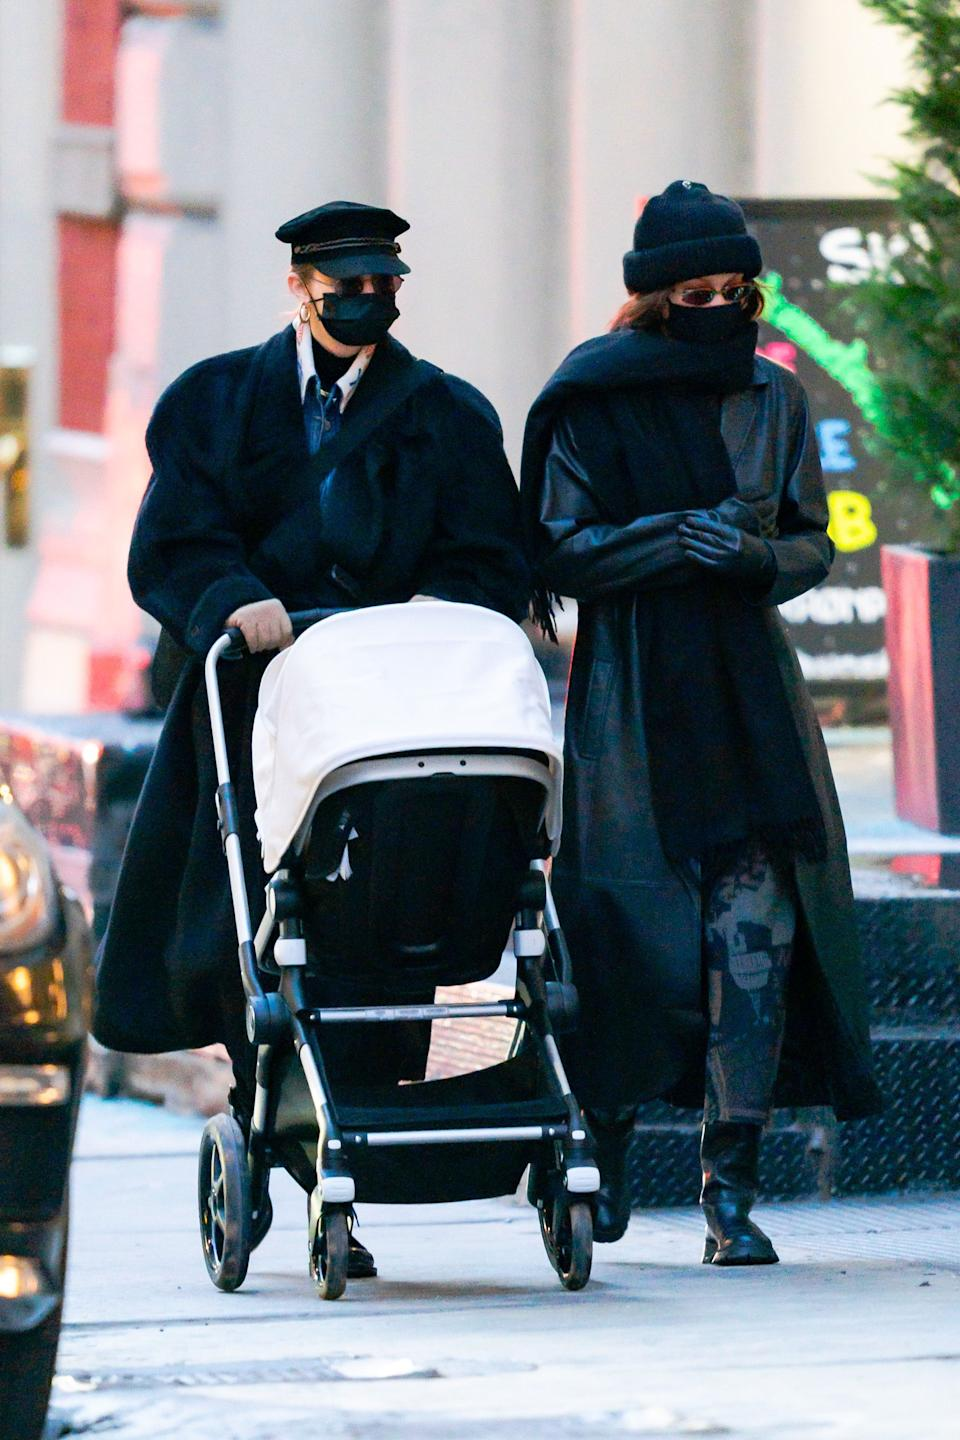 The model was pictured in December walking in New York with her older sister Gigi Hadid and her daughter Khai in a pram. (Getty Images)